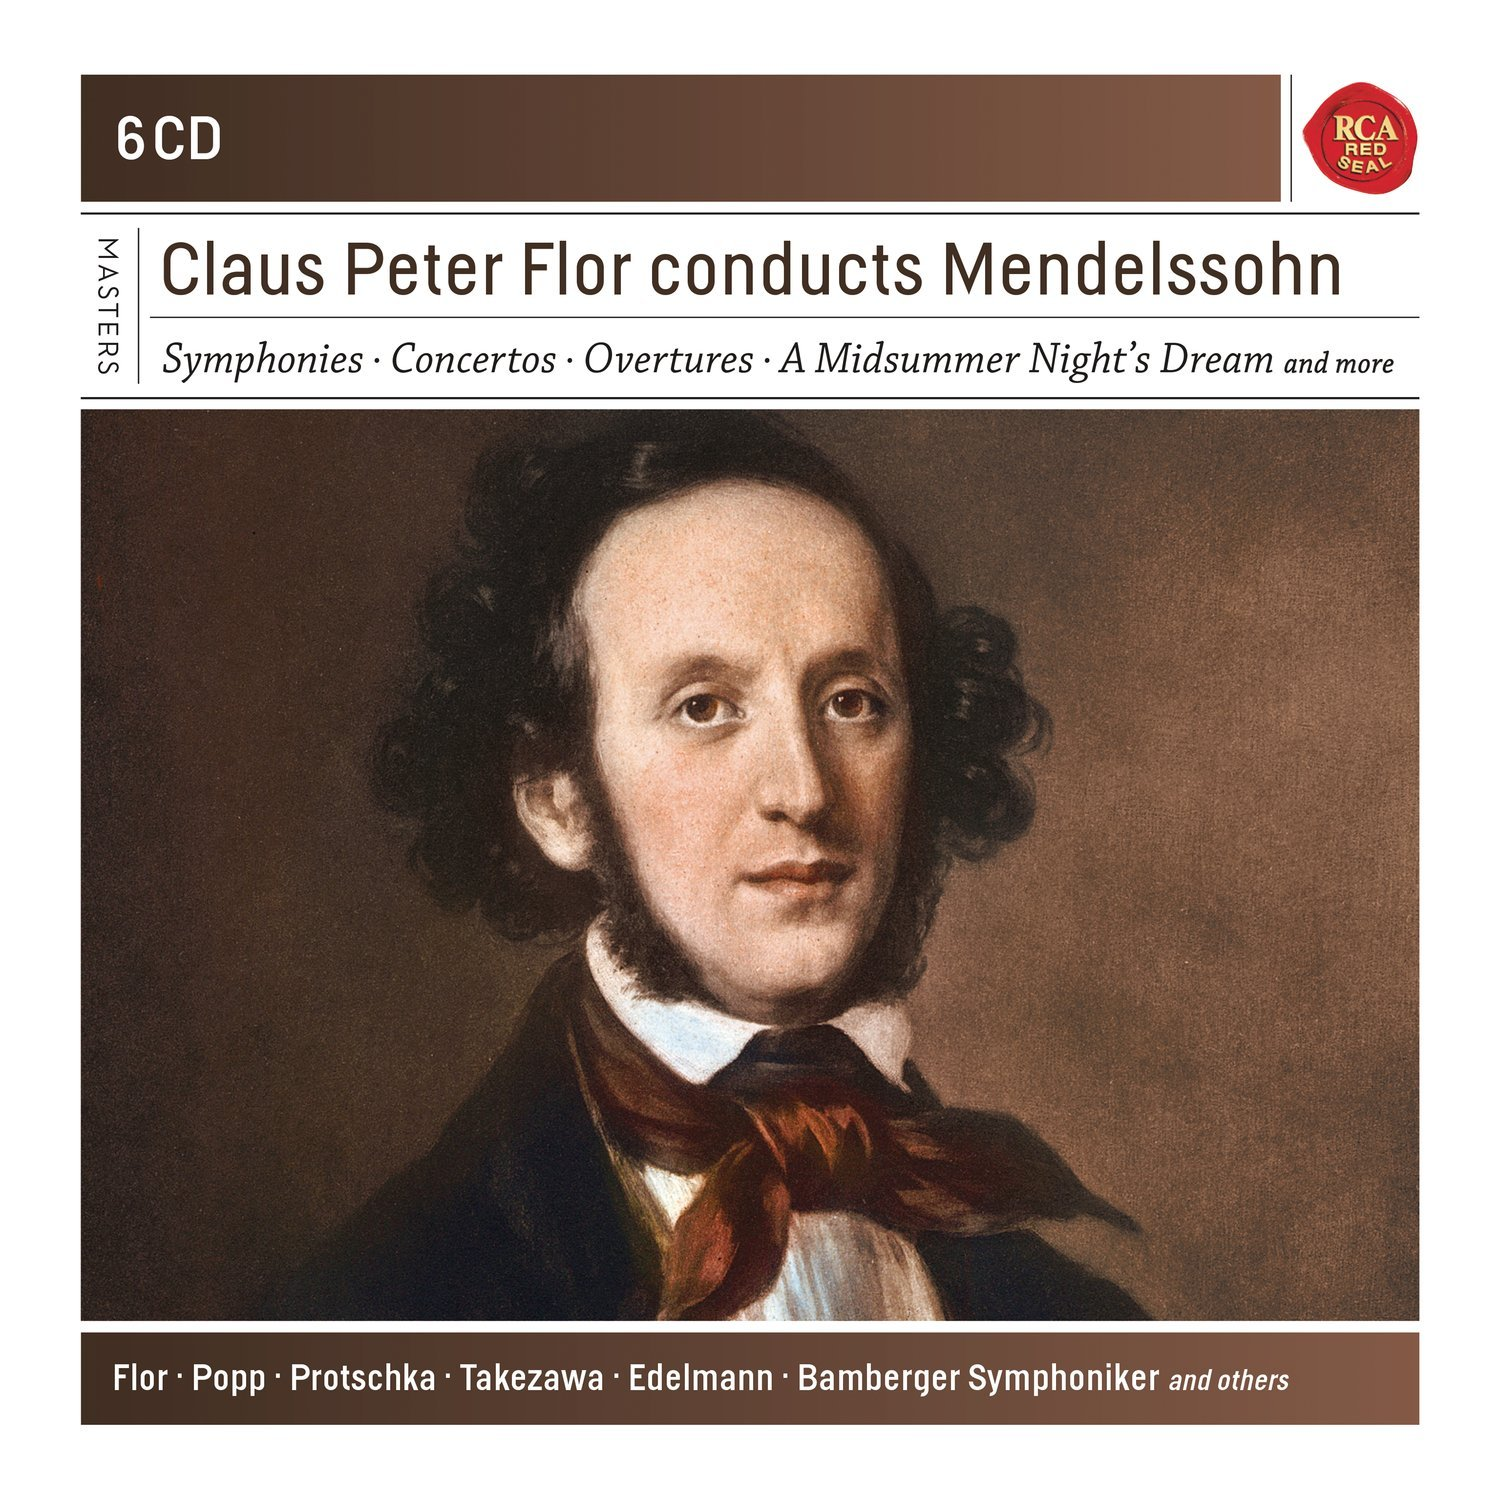 Claus Peter Flor conducts Mendelssohn